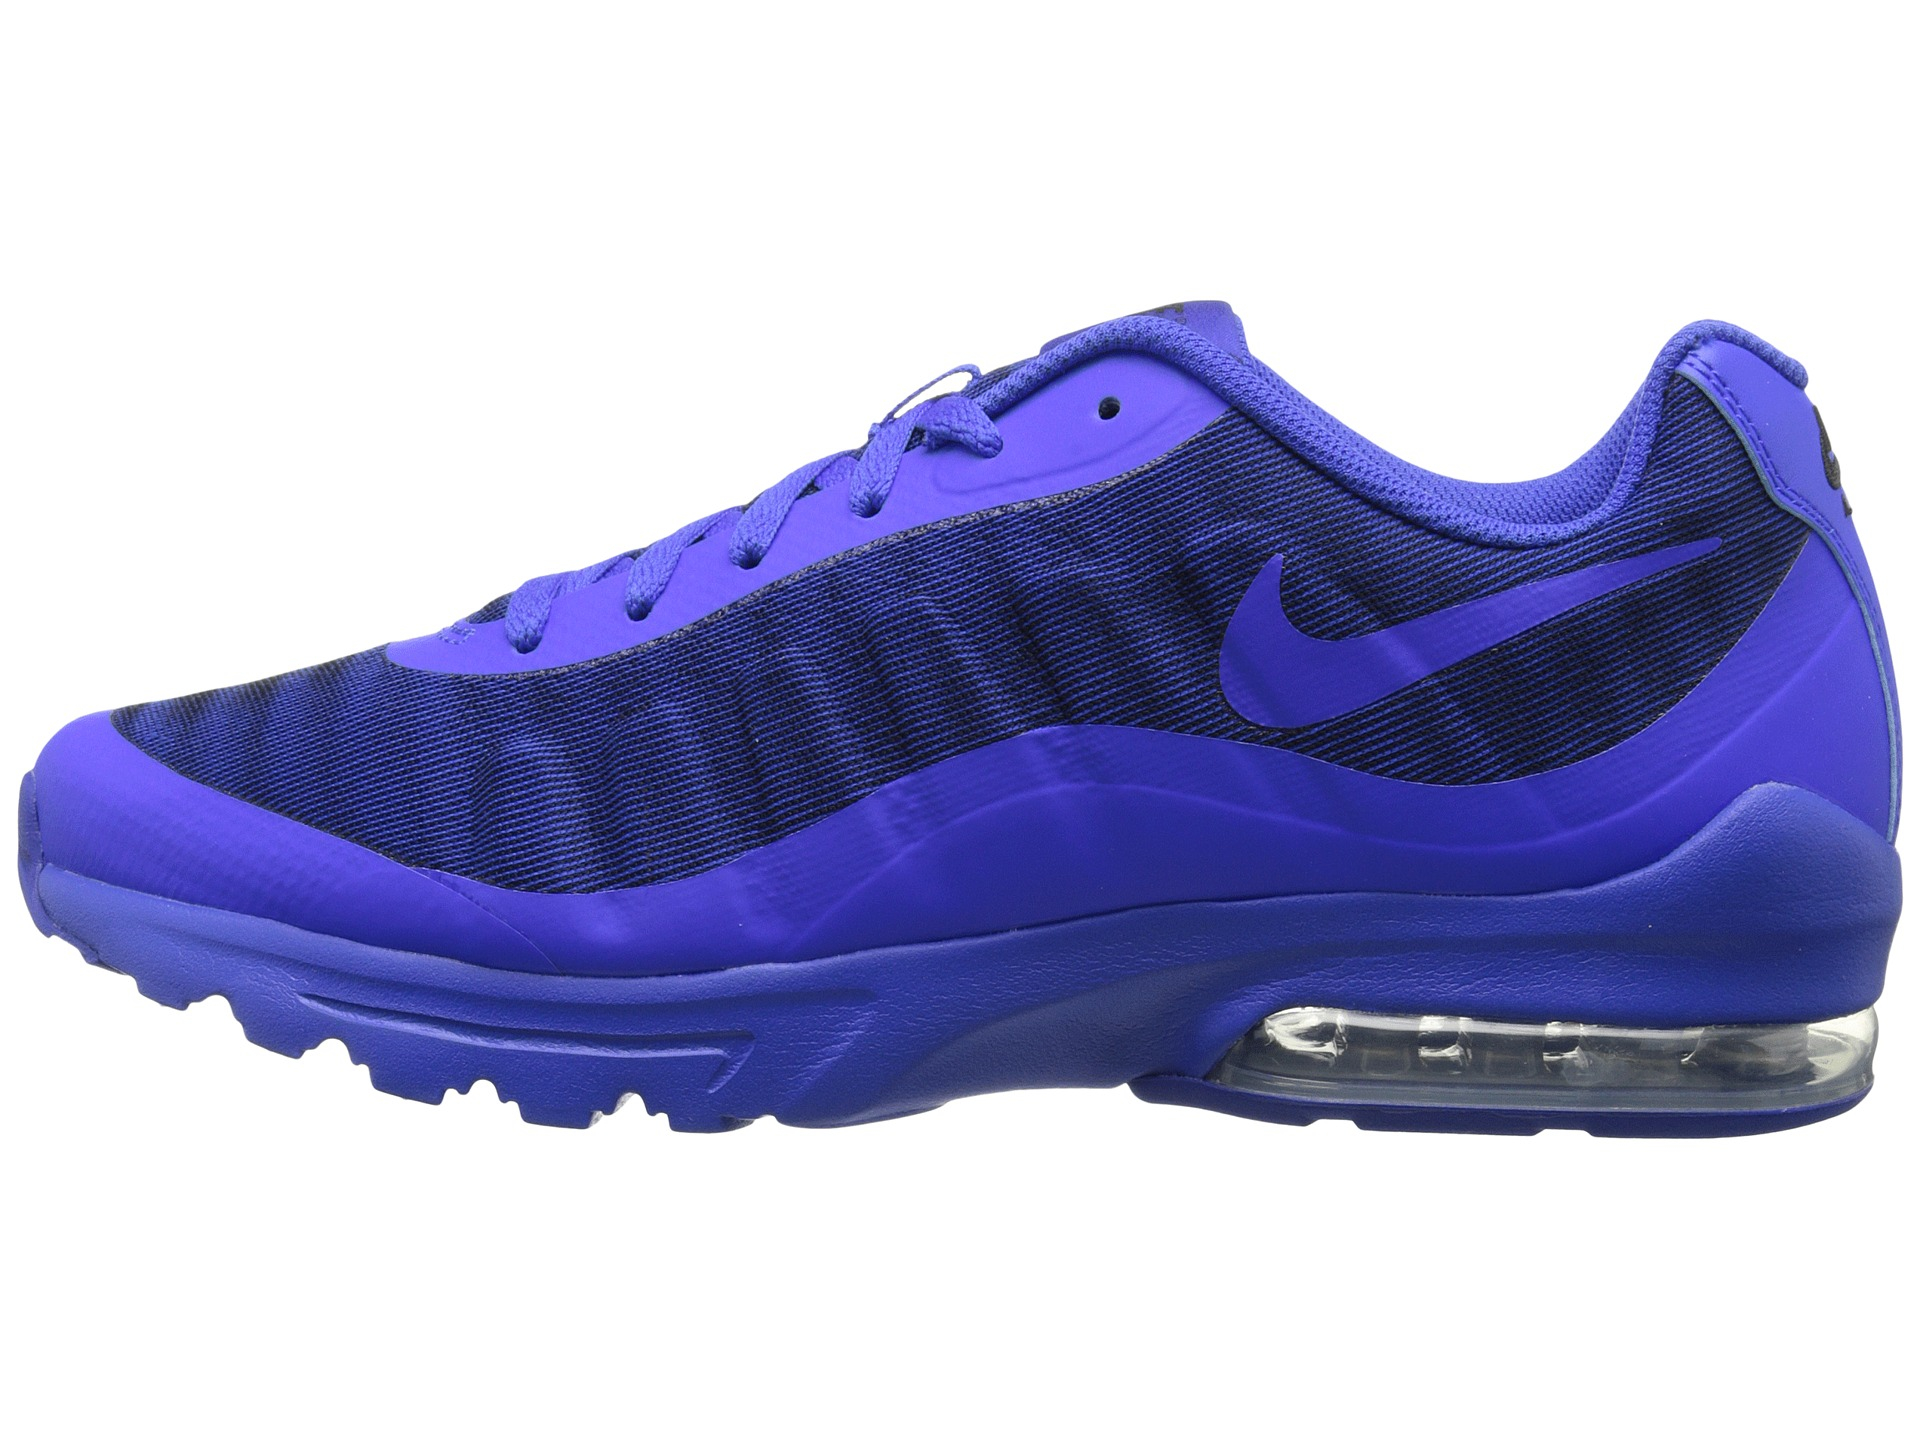 c24d520dde5 ... greece lyst nike air max invigor premium in blue for men 52258 9091a